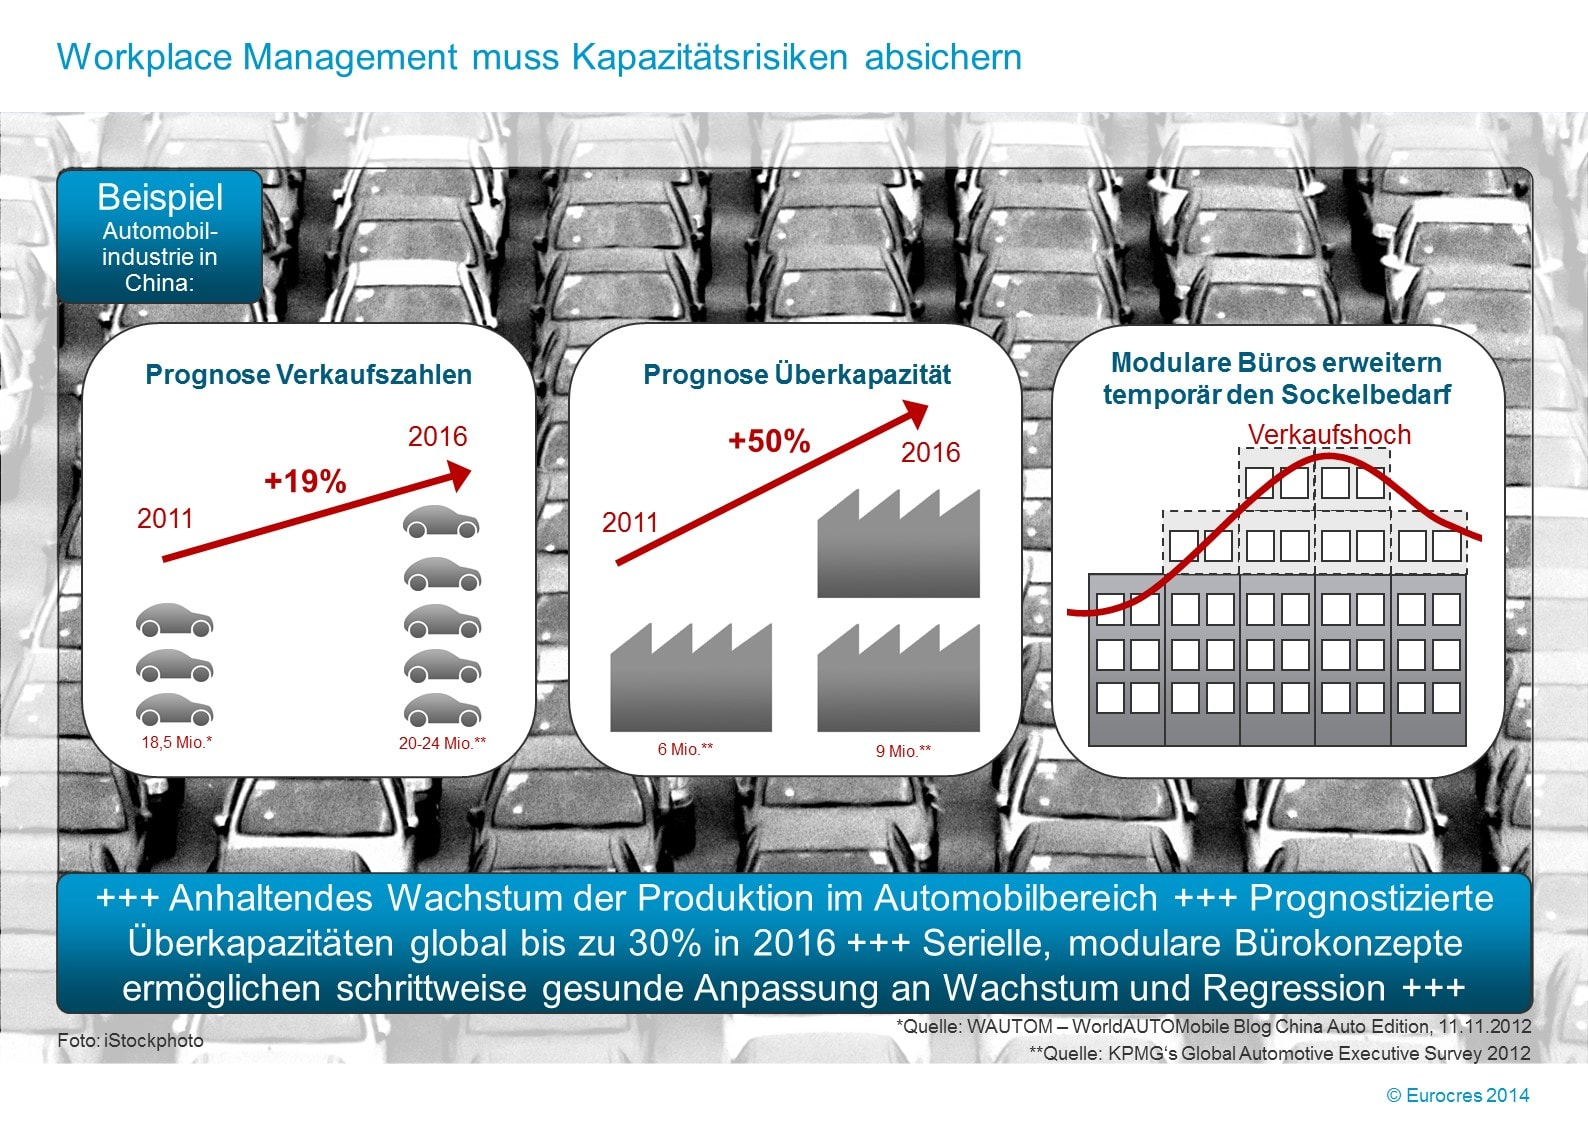 WorkPlace Flash: Workplace Management muss Kapazitätsrisiken absichern